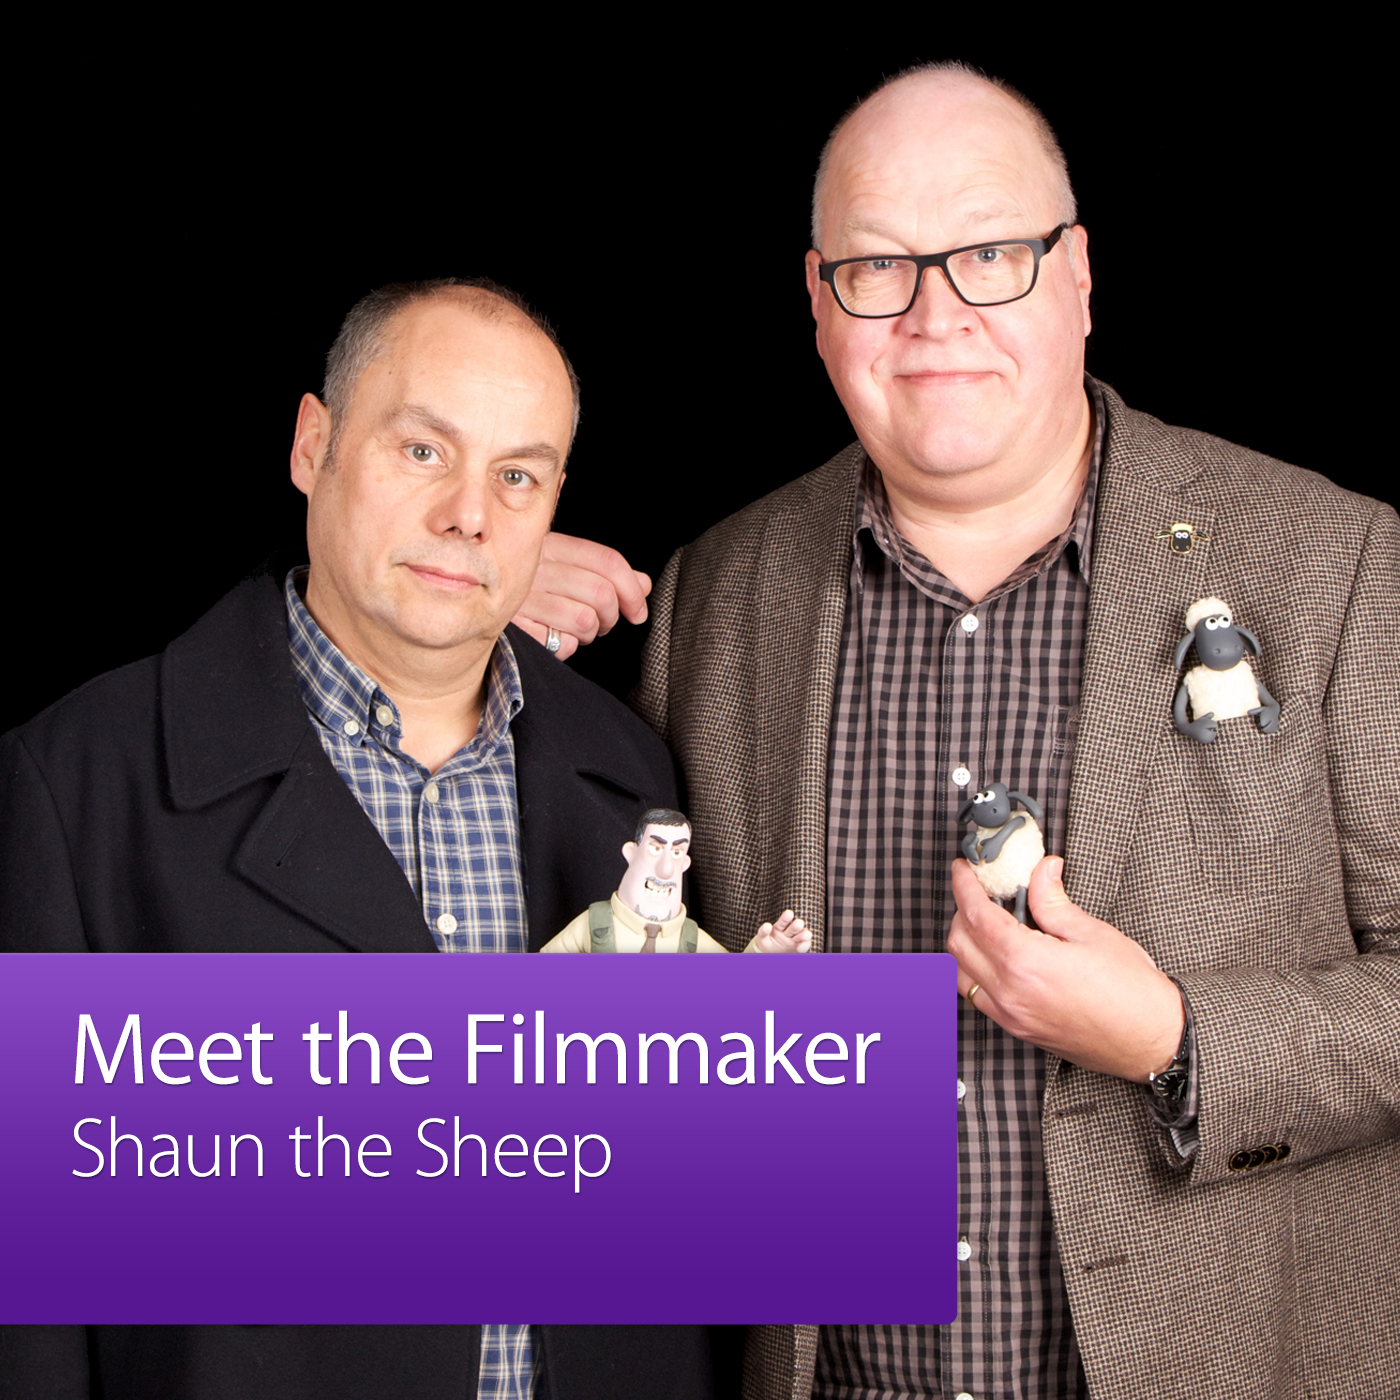 Shaun the Sheep: Meet the Filmmaker